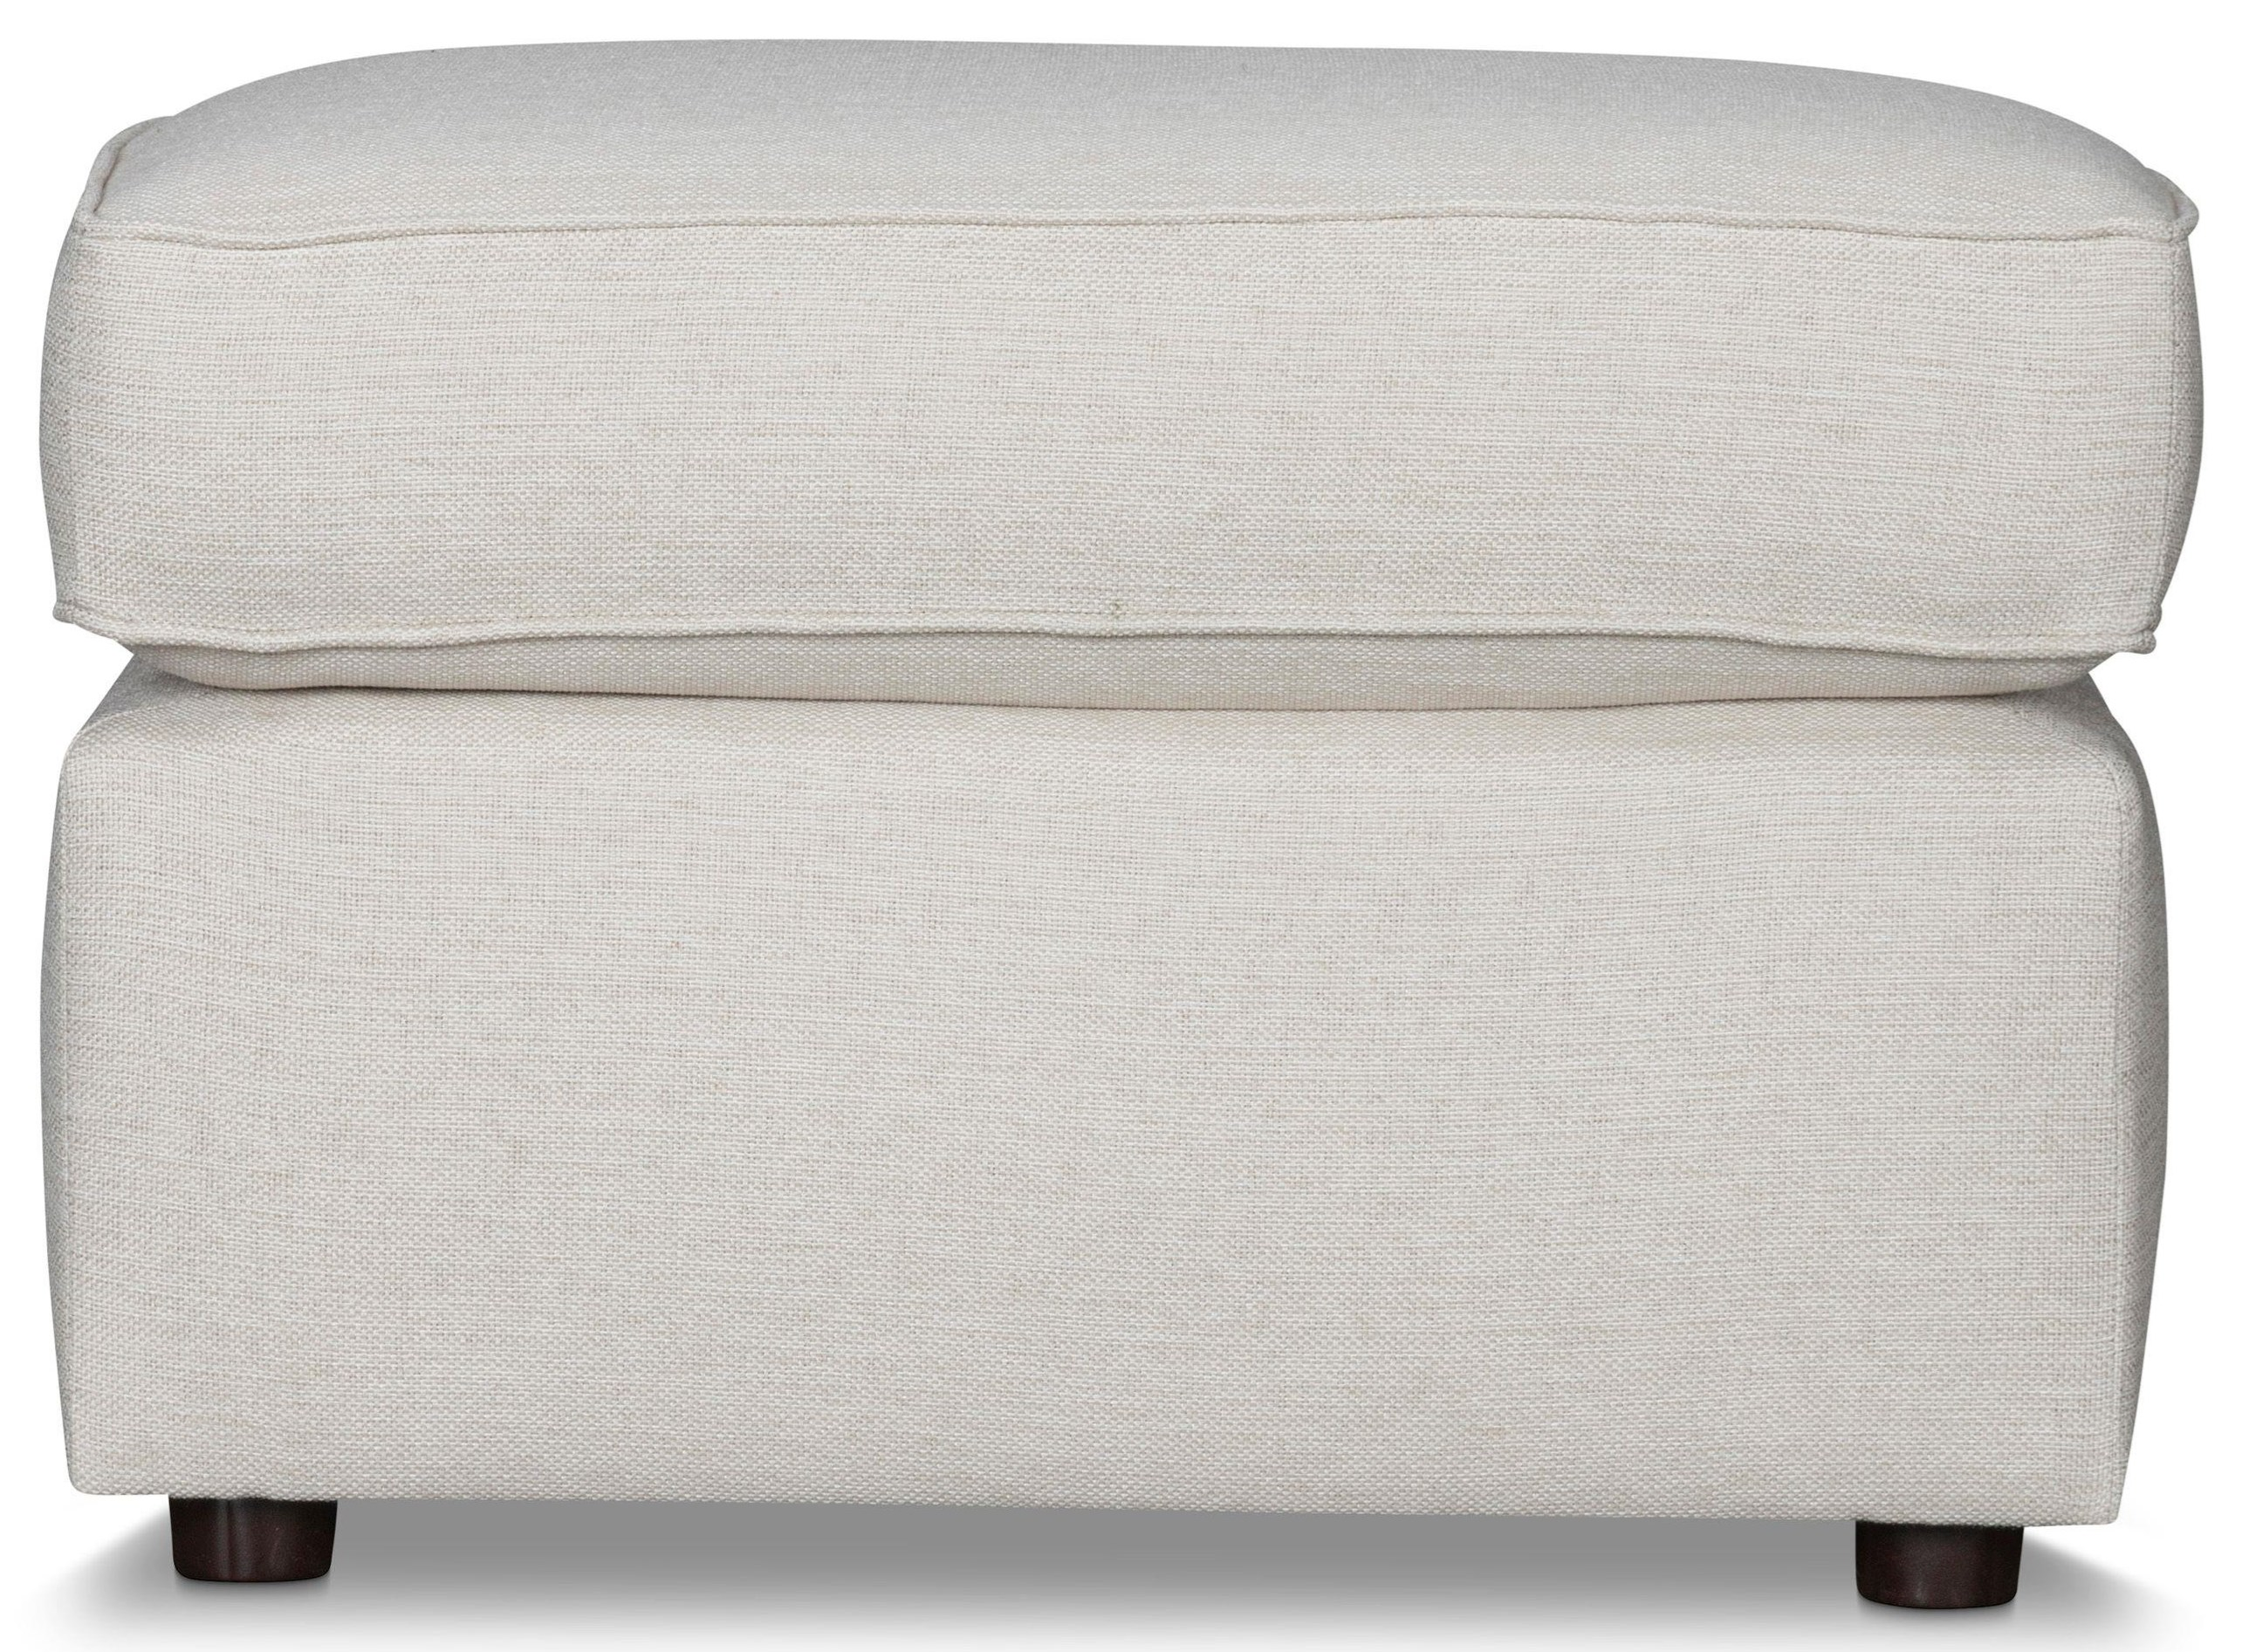 Leigh Upholstered Ottoman by Stone & Leigh Furniture at Baer's Furniture